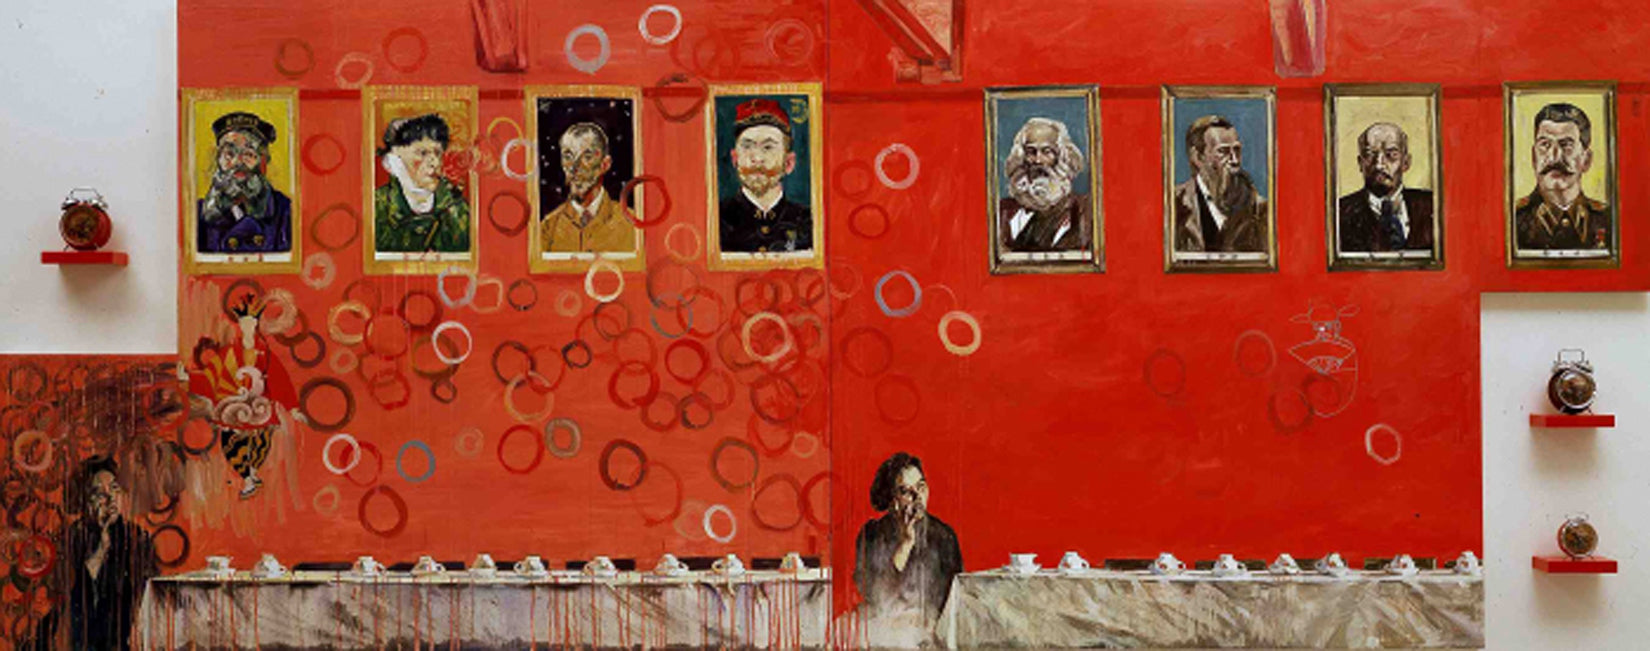 """Hung Liu, Modern Time, 2005, 66 x 168"""", oil on canvas with lacquered wood, cultural revolution clocks"""